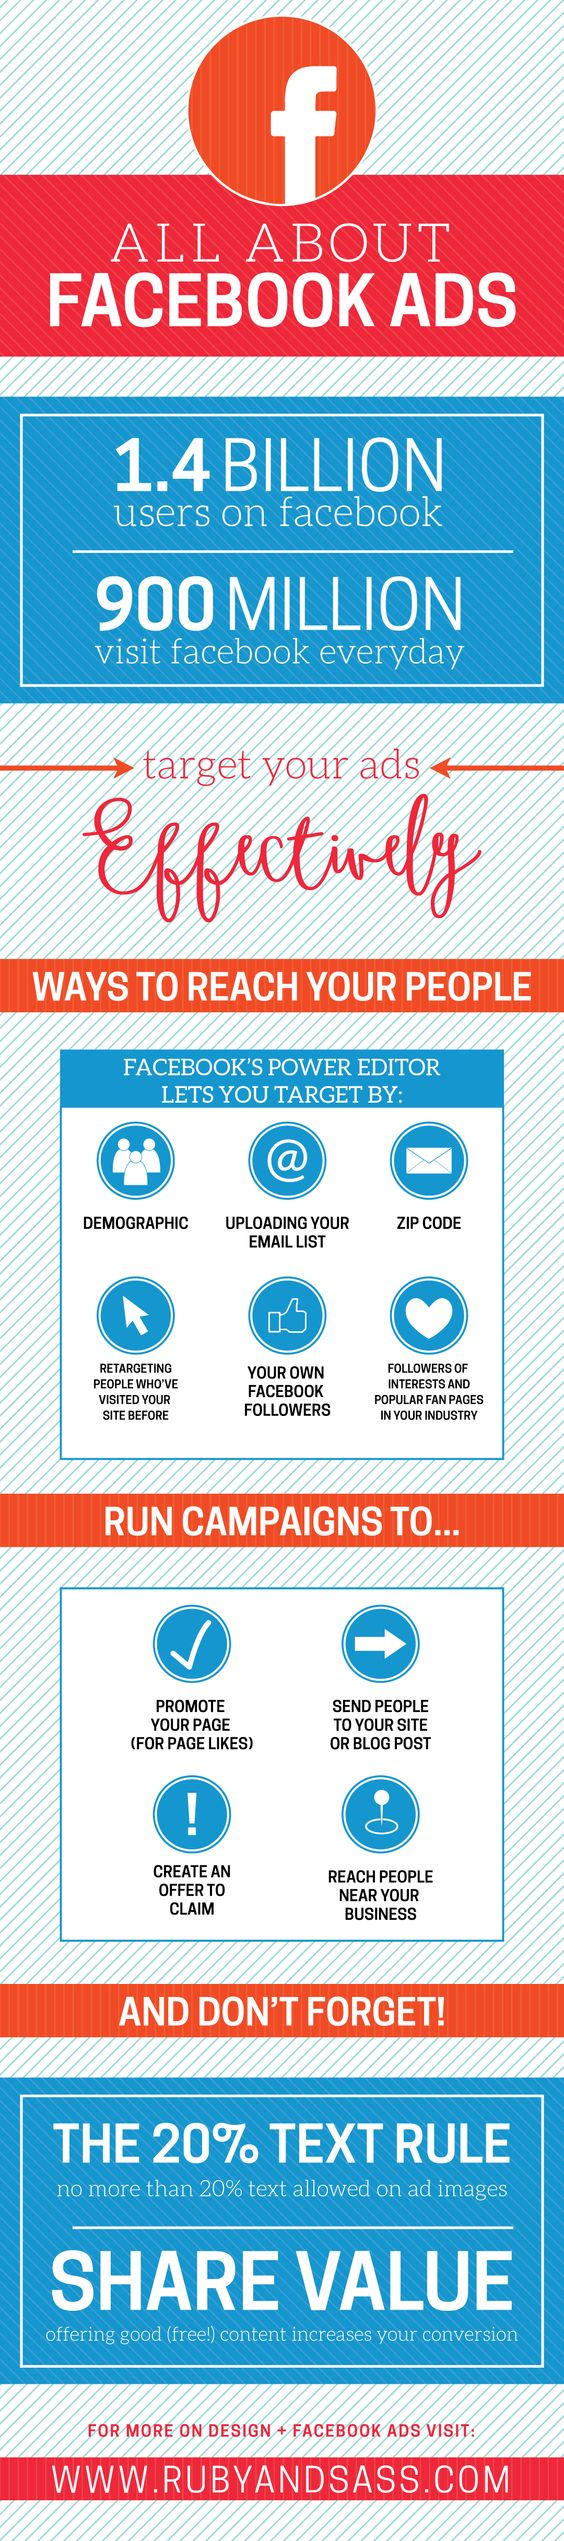 Facebook Ads Infographic